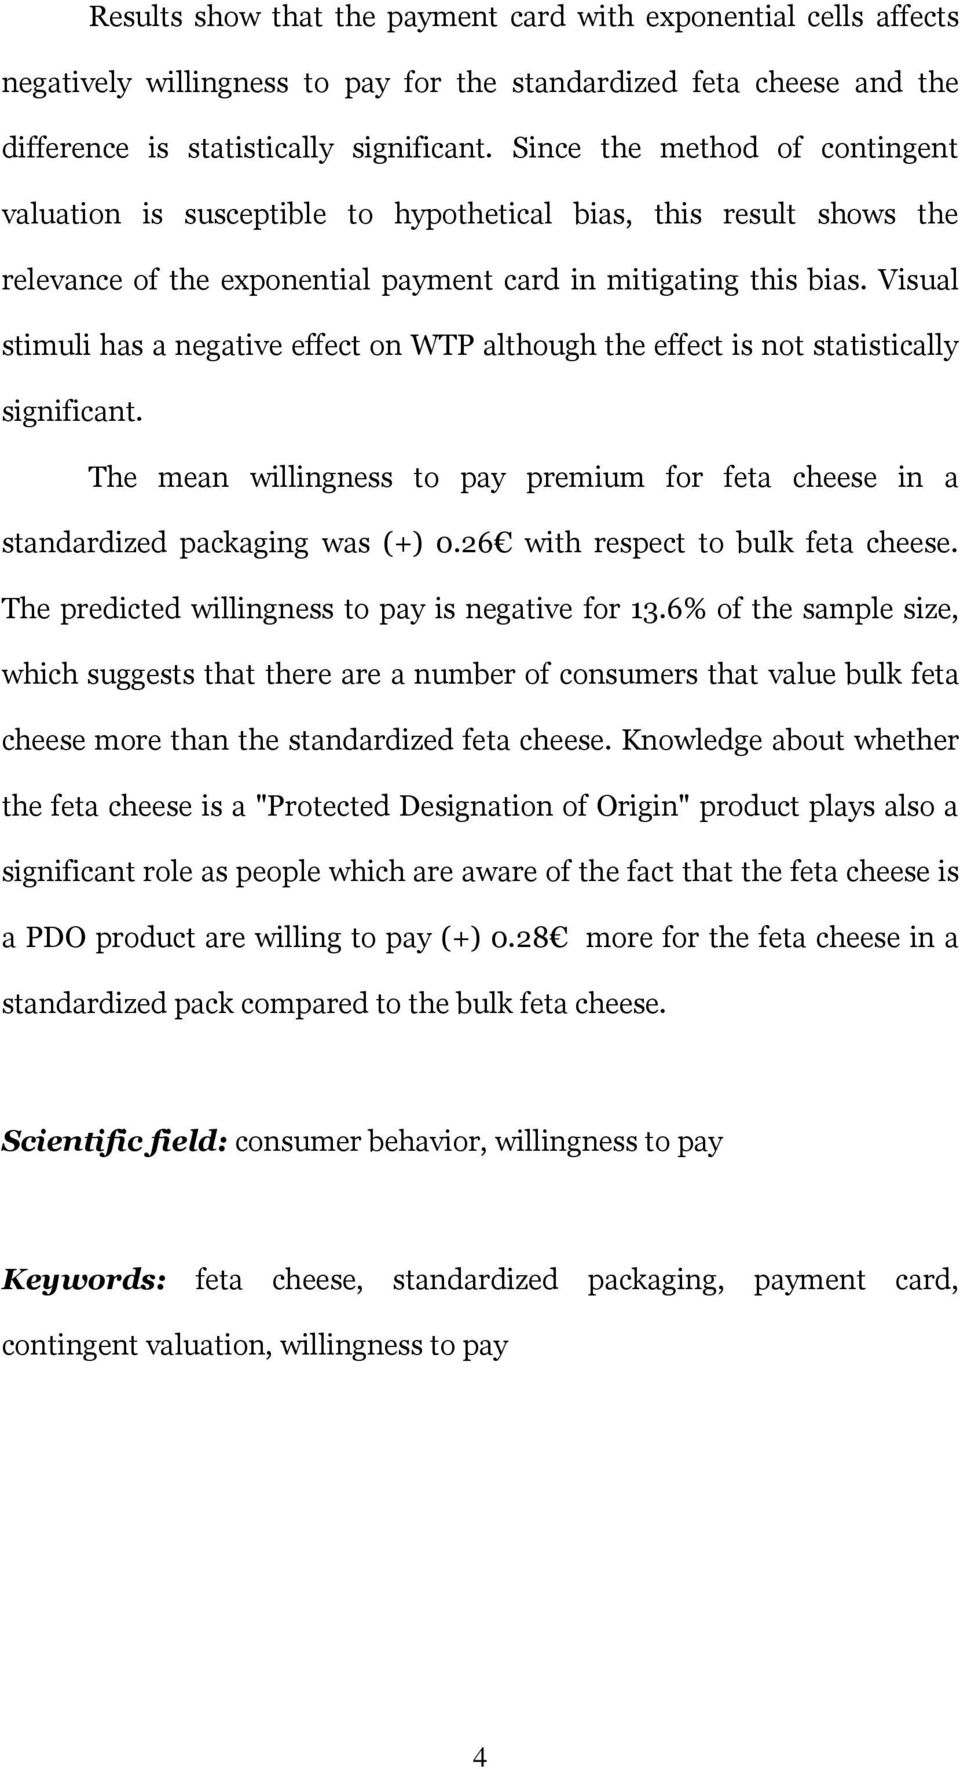 Visual stimuli has a negative effect on WTP although the effect is not statistically significant. The mean willingness to pay premium for feta cheese in a standardized packaging was (+) 0.